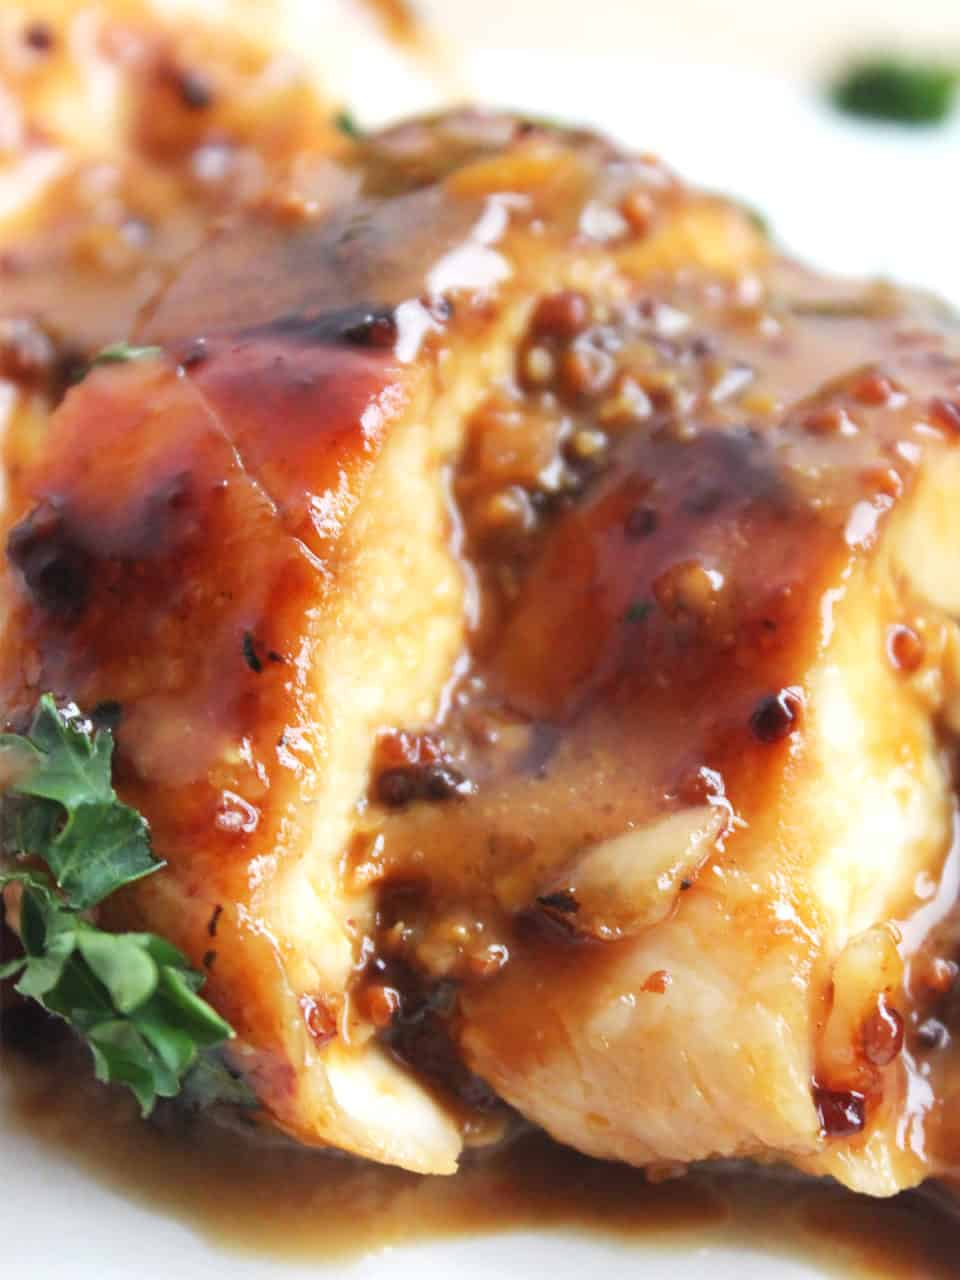 Close up of a sliced chicken breast finished with honey and mustard sauce.